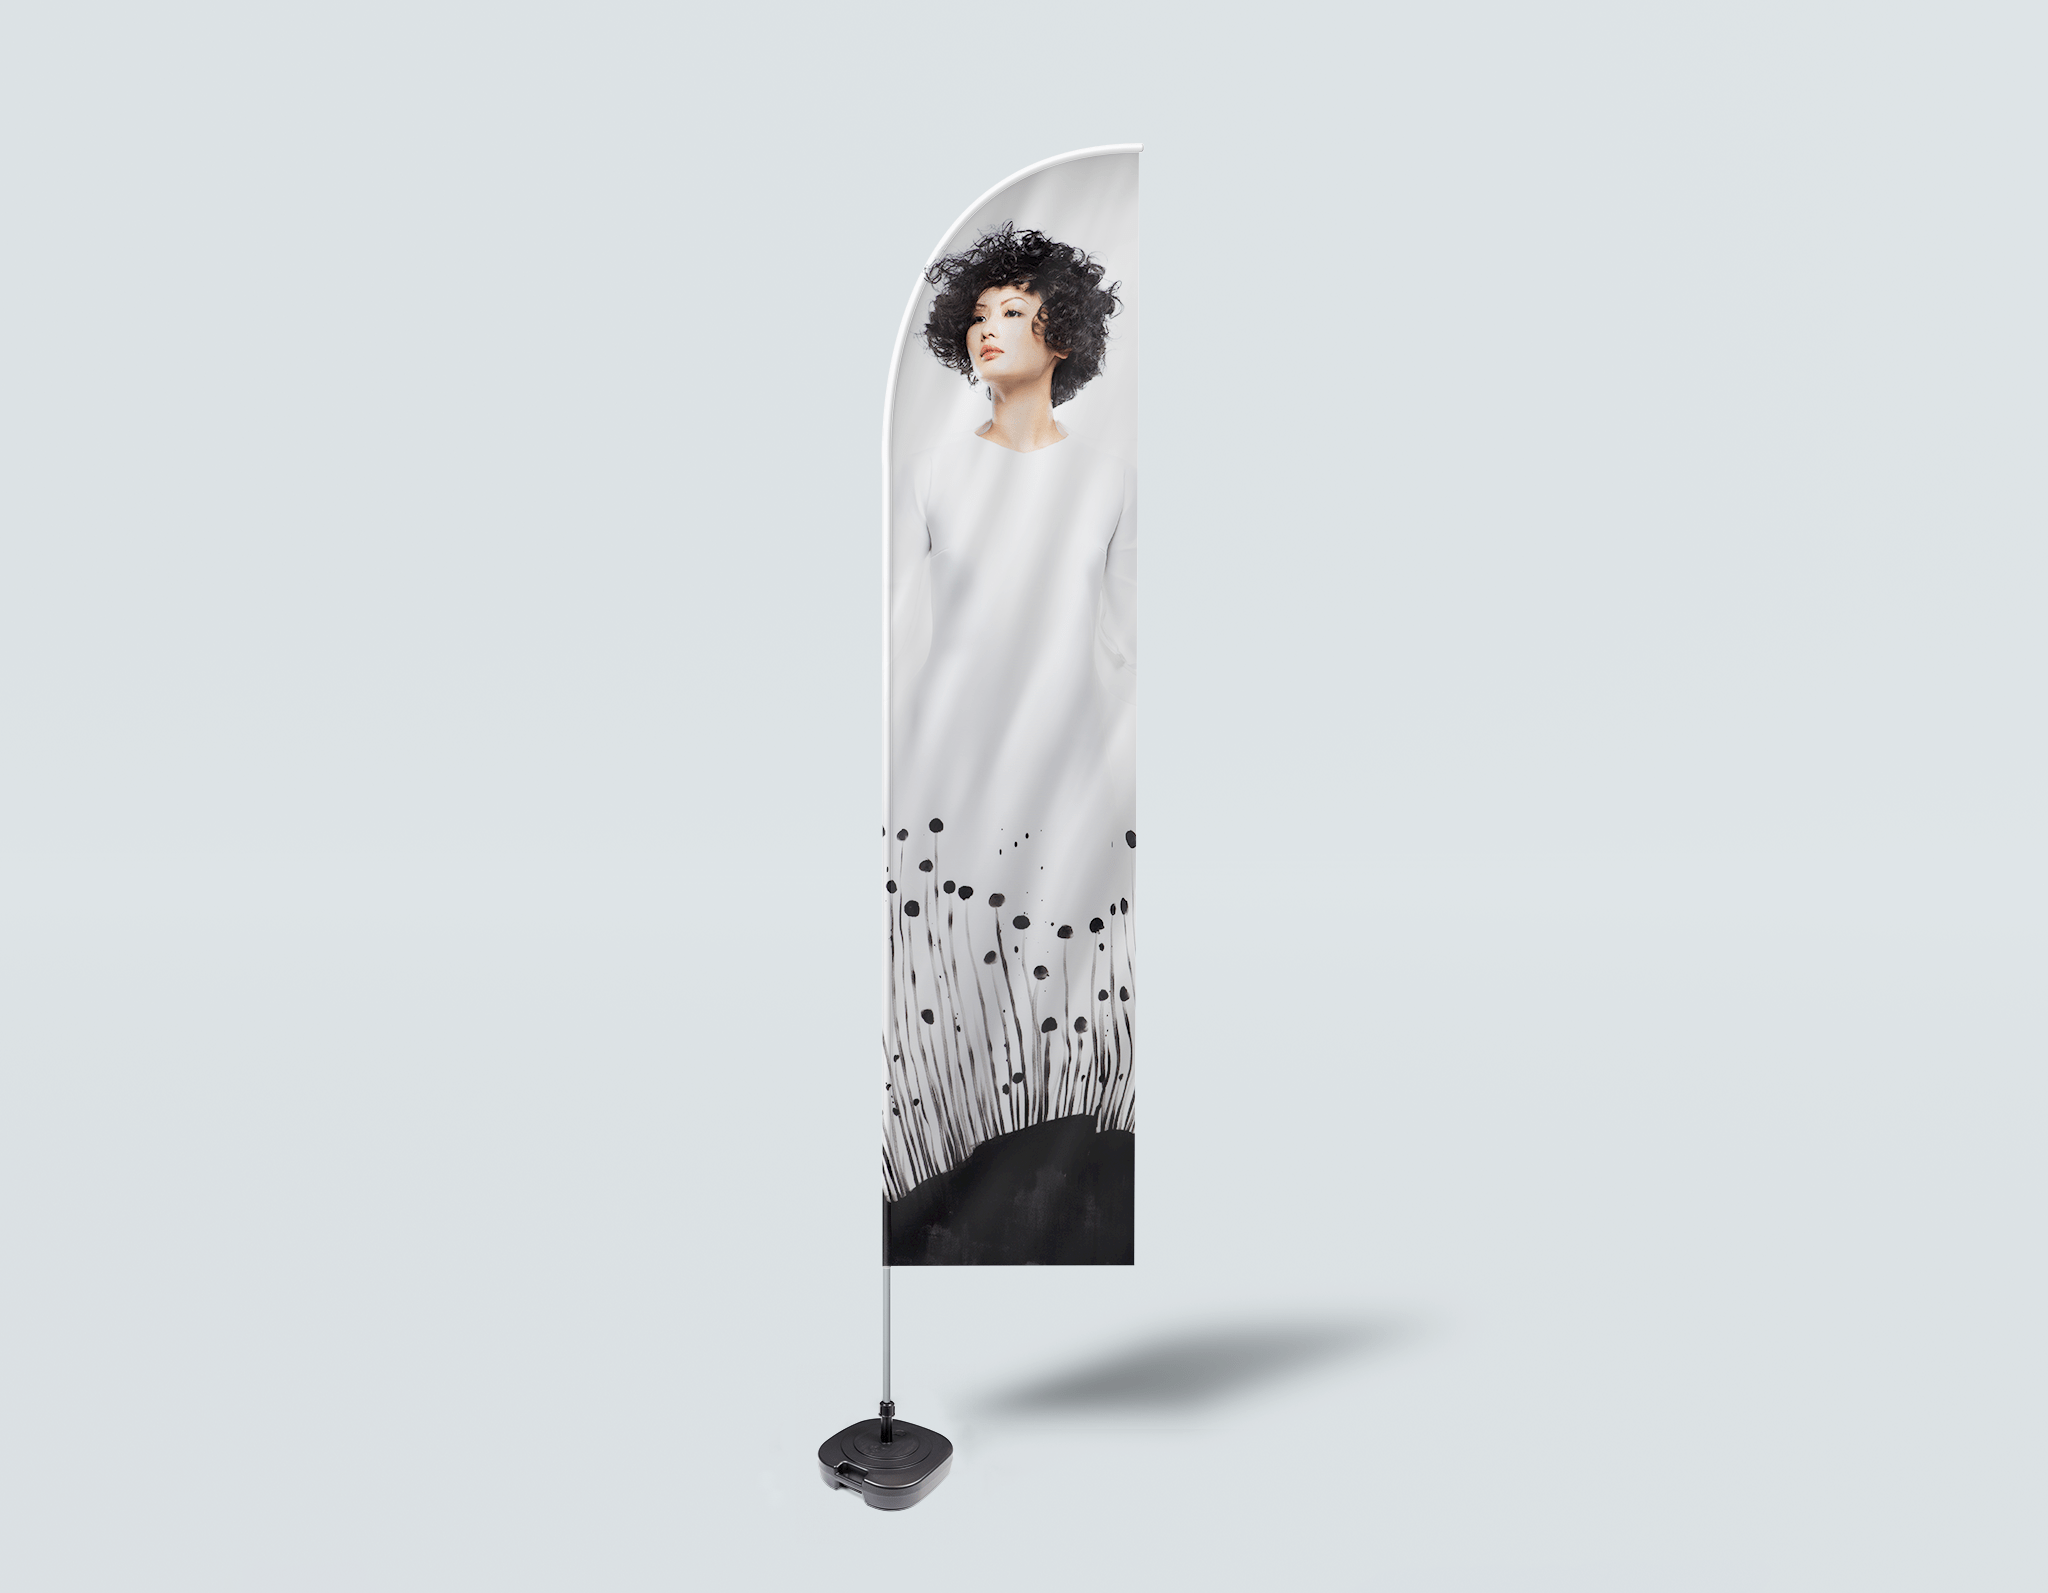 Salon Beach Flag -  Woman with Messy Curls Short Hairstyle in Grass Graphic Gown